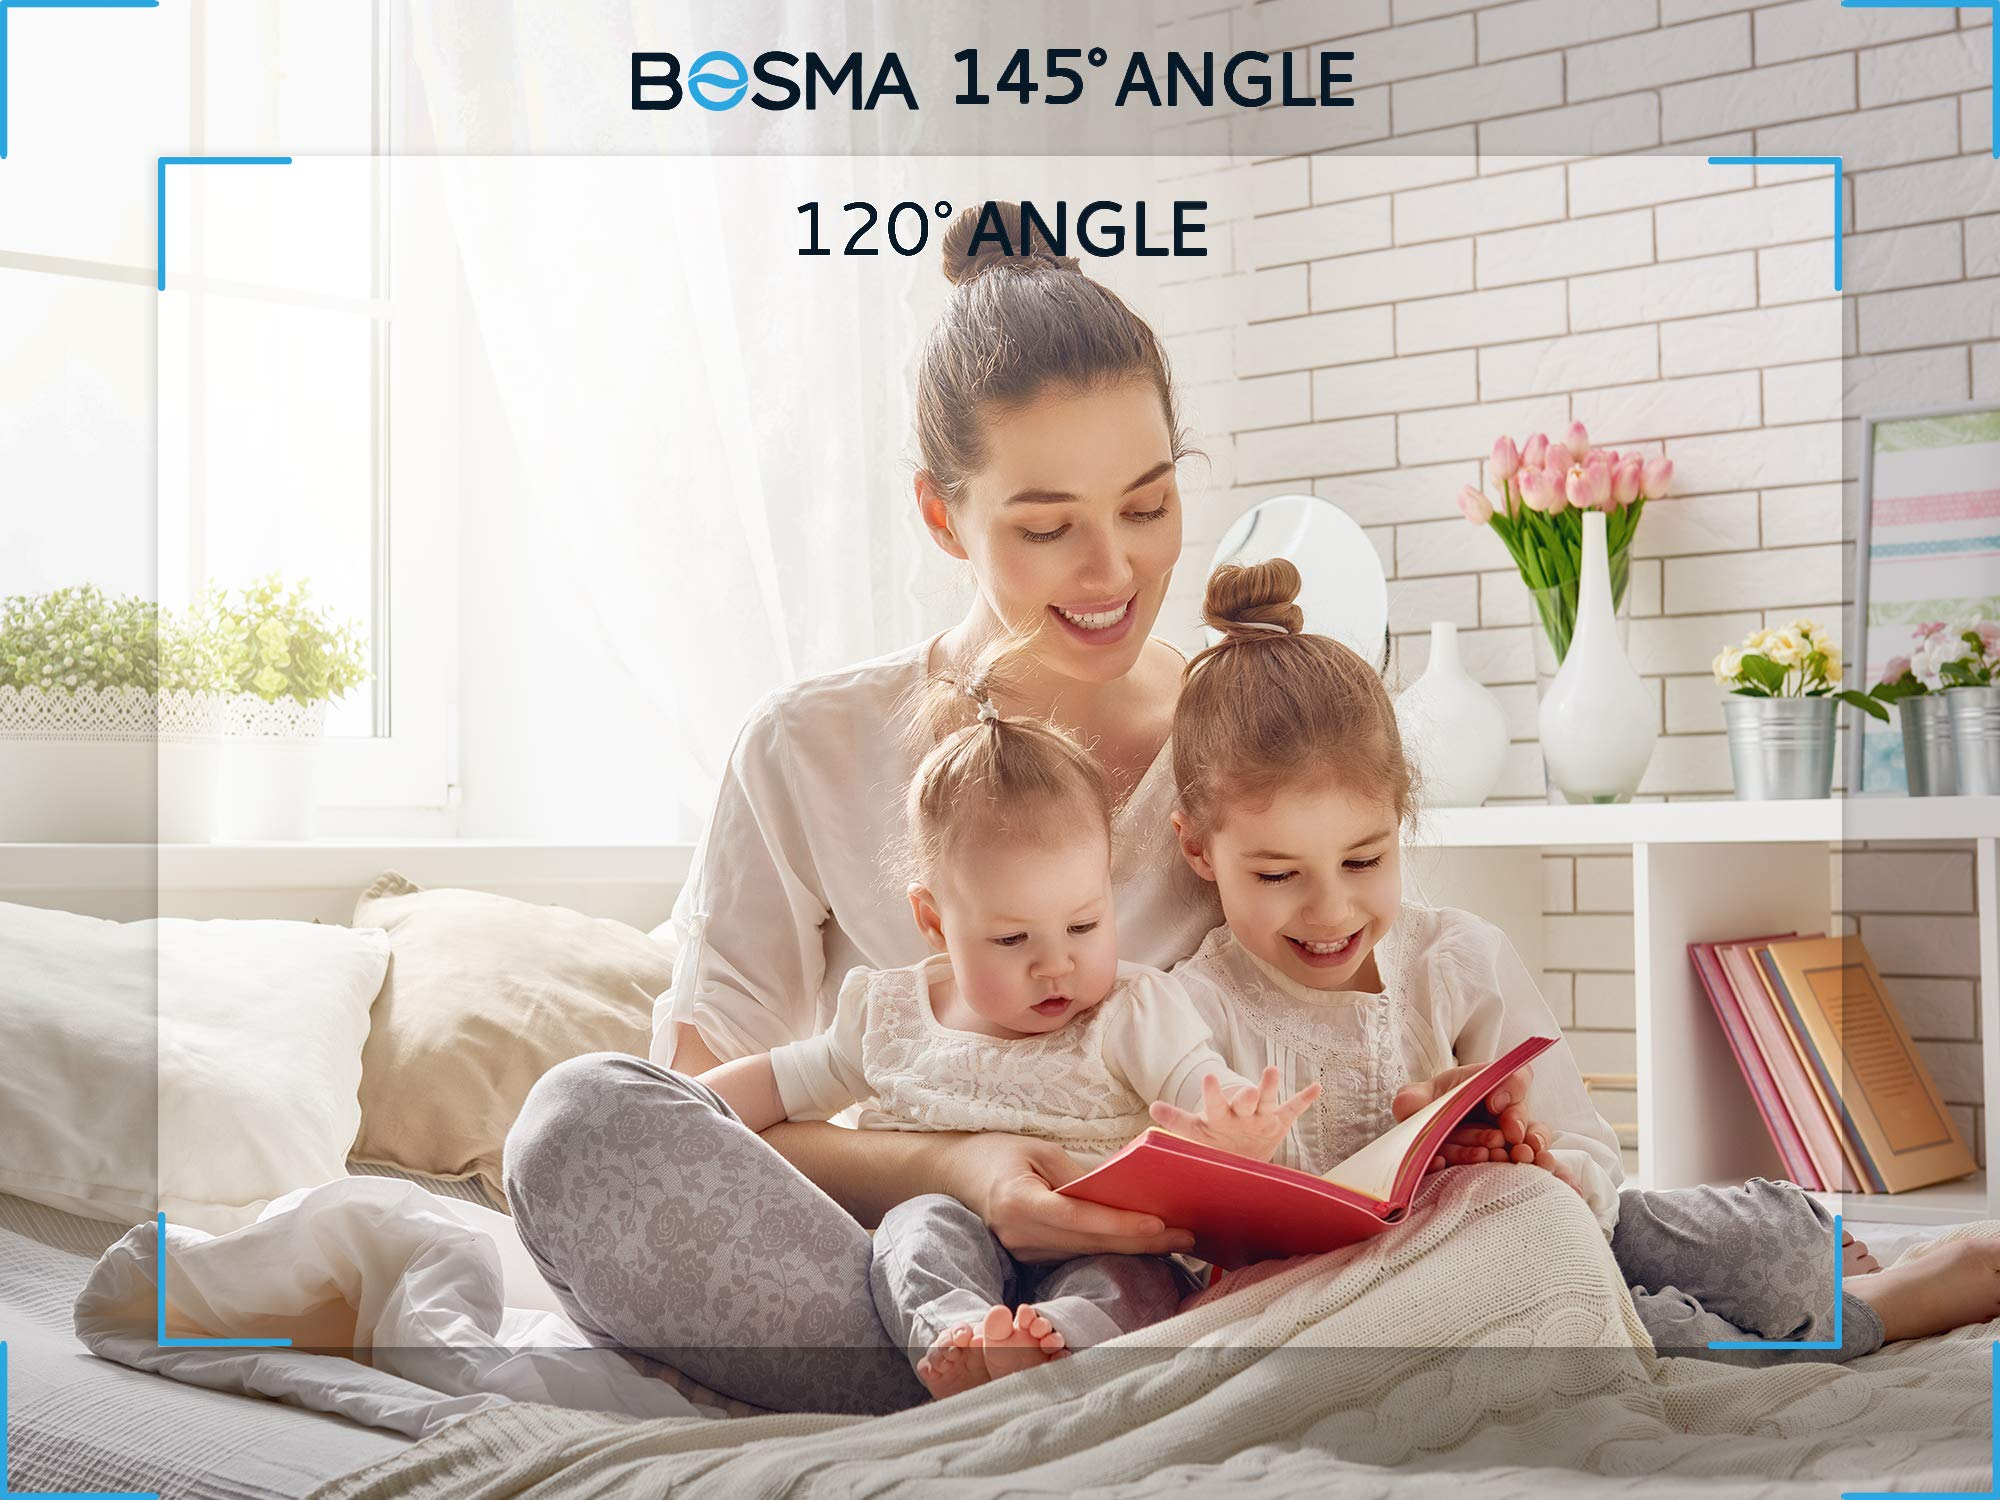 Bosma Video Baby Monitor with Phone app, 1080p HD WiFi Camera with 2 Way Audio, Night Vision, Sound and Motion Detection, Cloud Storage, Perfect for Travel Parents and Elderly, Compatible for iPhone